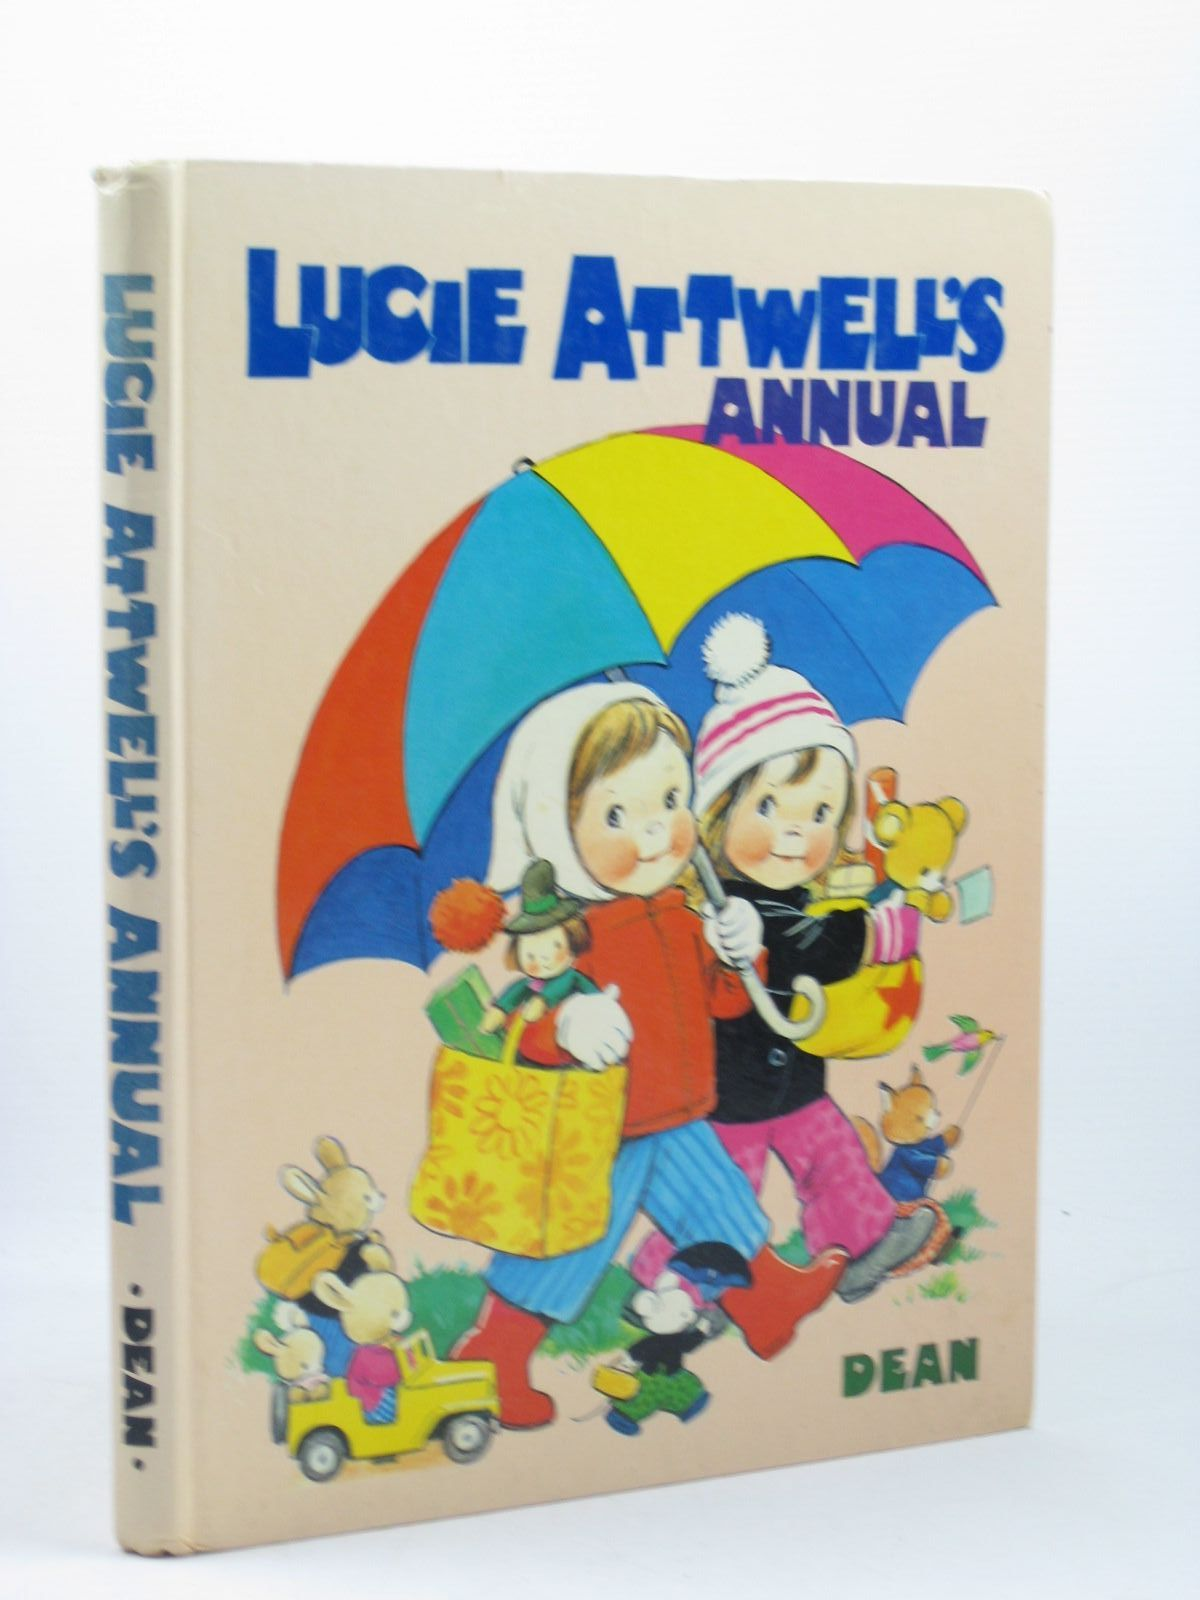 Photo of LUCIE ATTWELL'S ANNUAL 1972 written by Attwell, Mabel Lucie illustrated by Attwell, Mabel Lucie published by Dean & Son Ltd. (STOCK CODE: 1312419)  for sale by Stella & Rose's Books